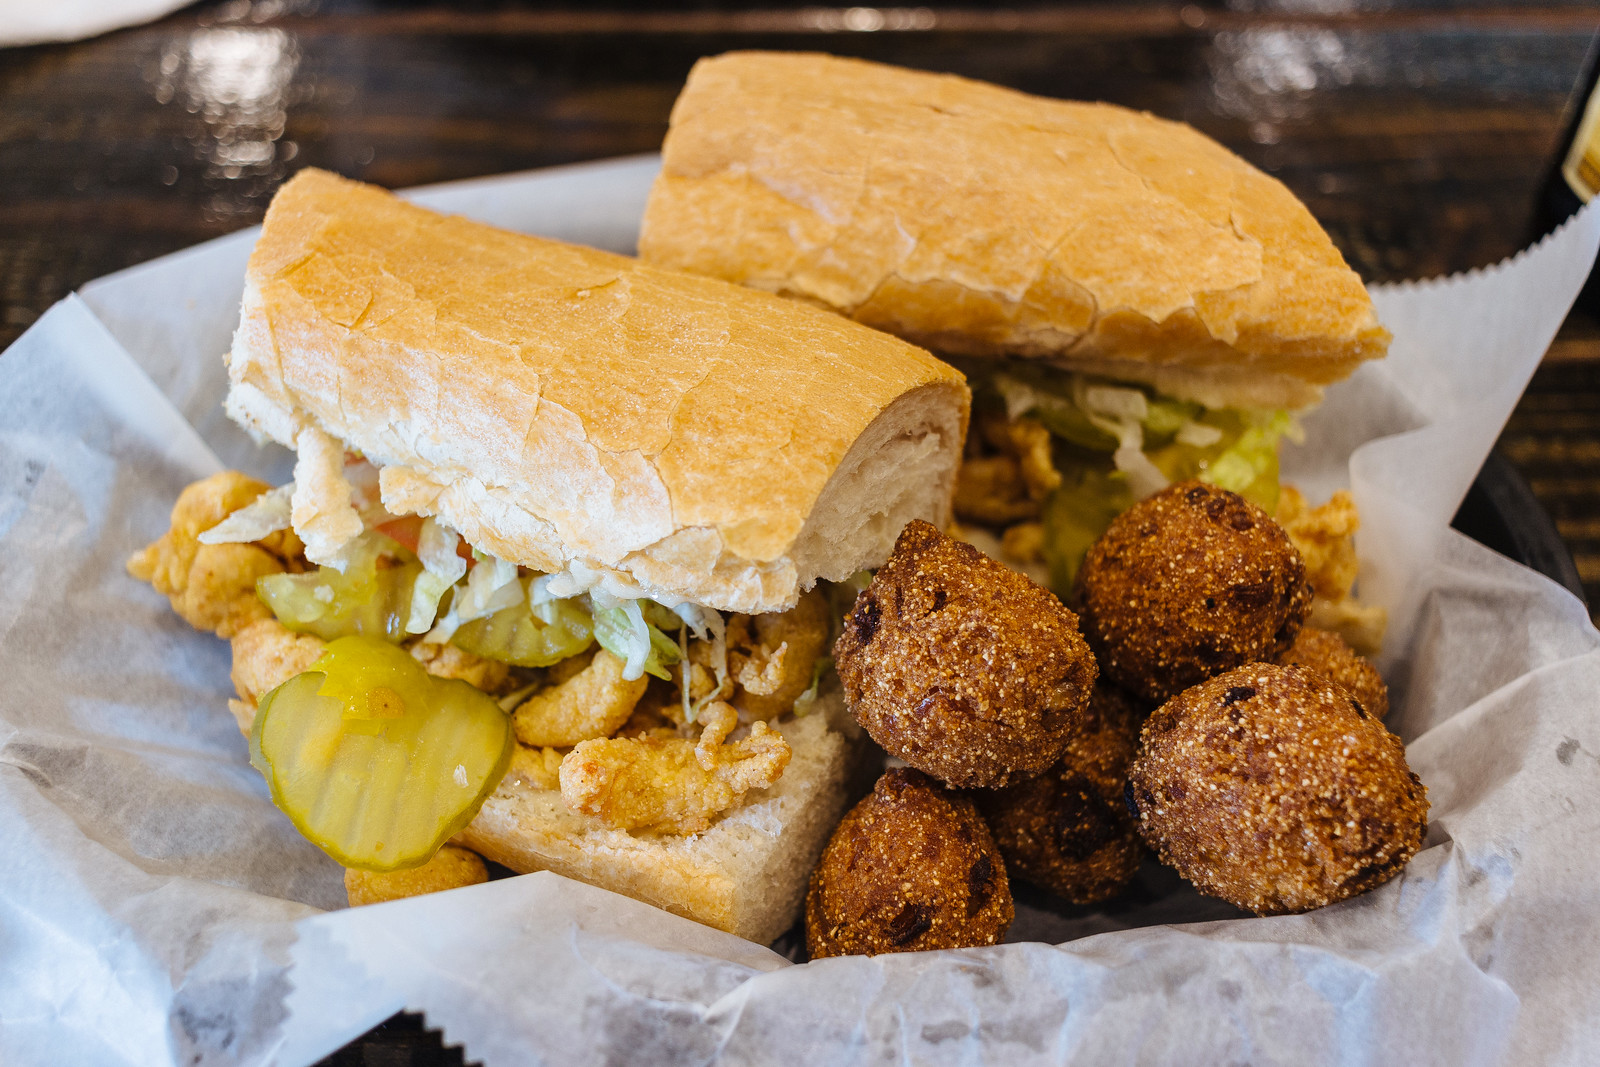 Po'boy sandwich with fried crawfish and pickles with a side of hushpuppies